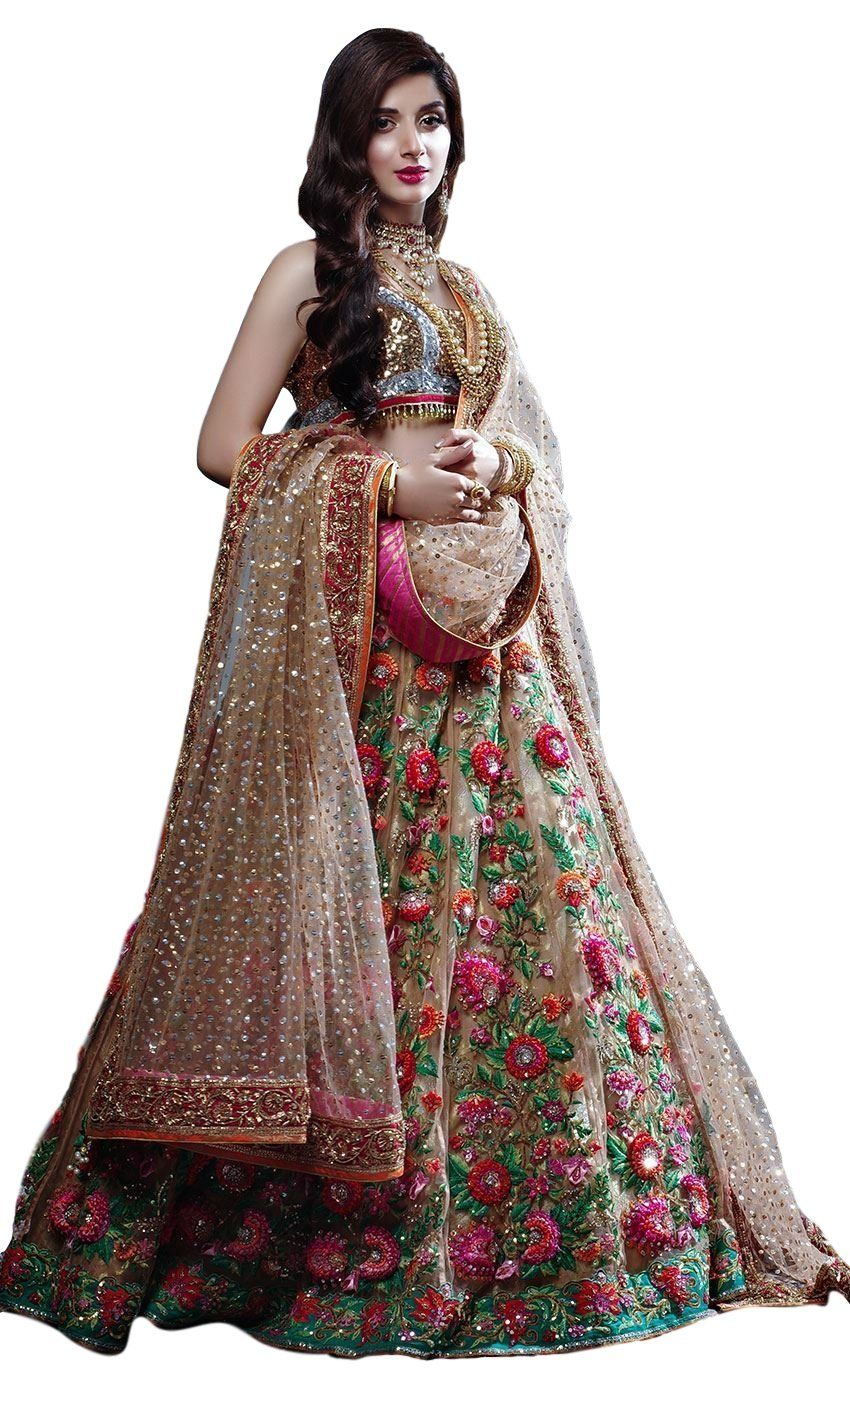 Fawn Color Wedding Lehenga with Floral Embroidery  choker